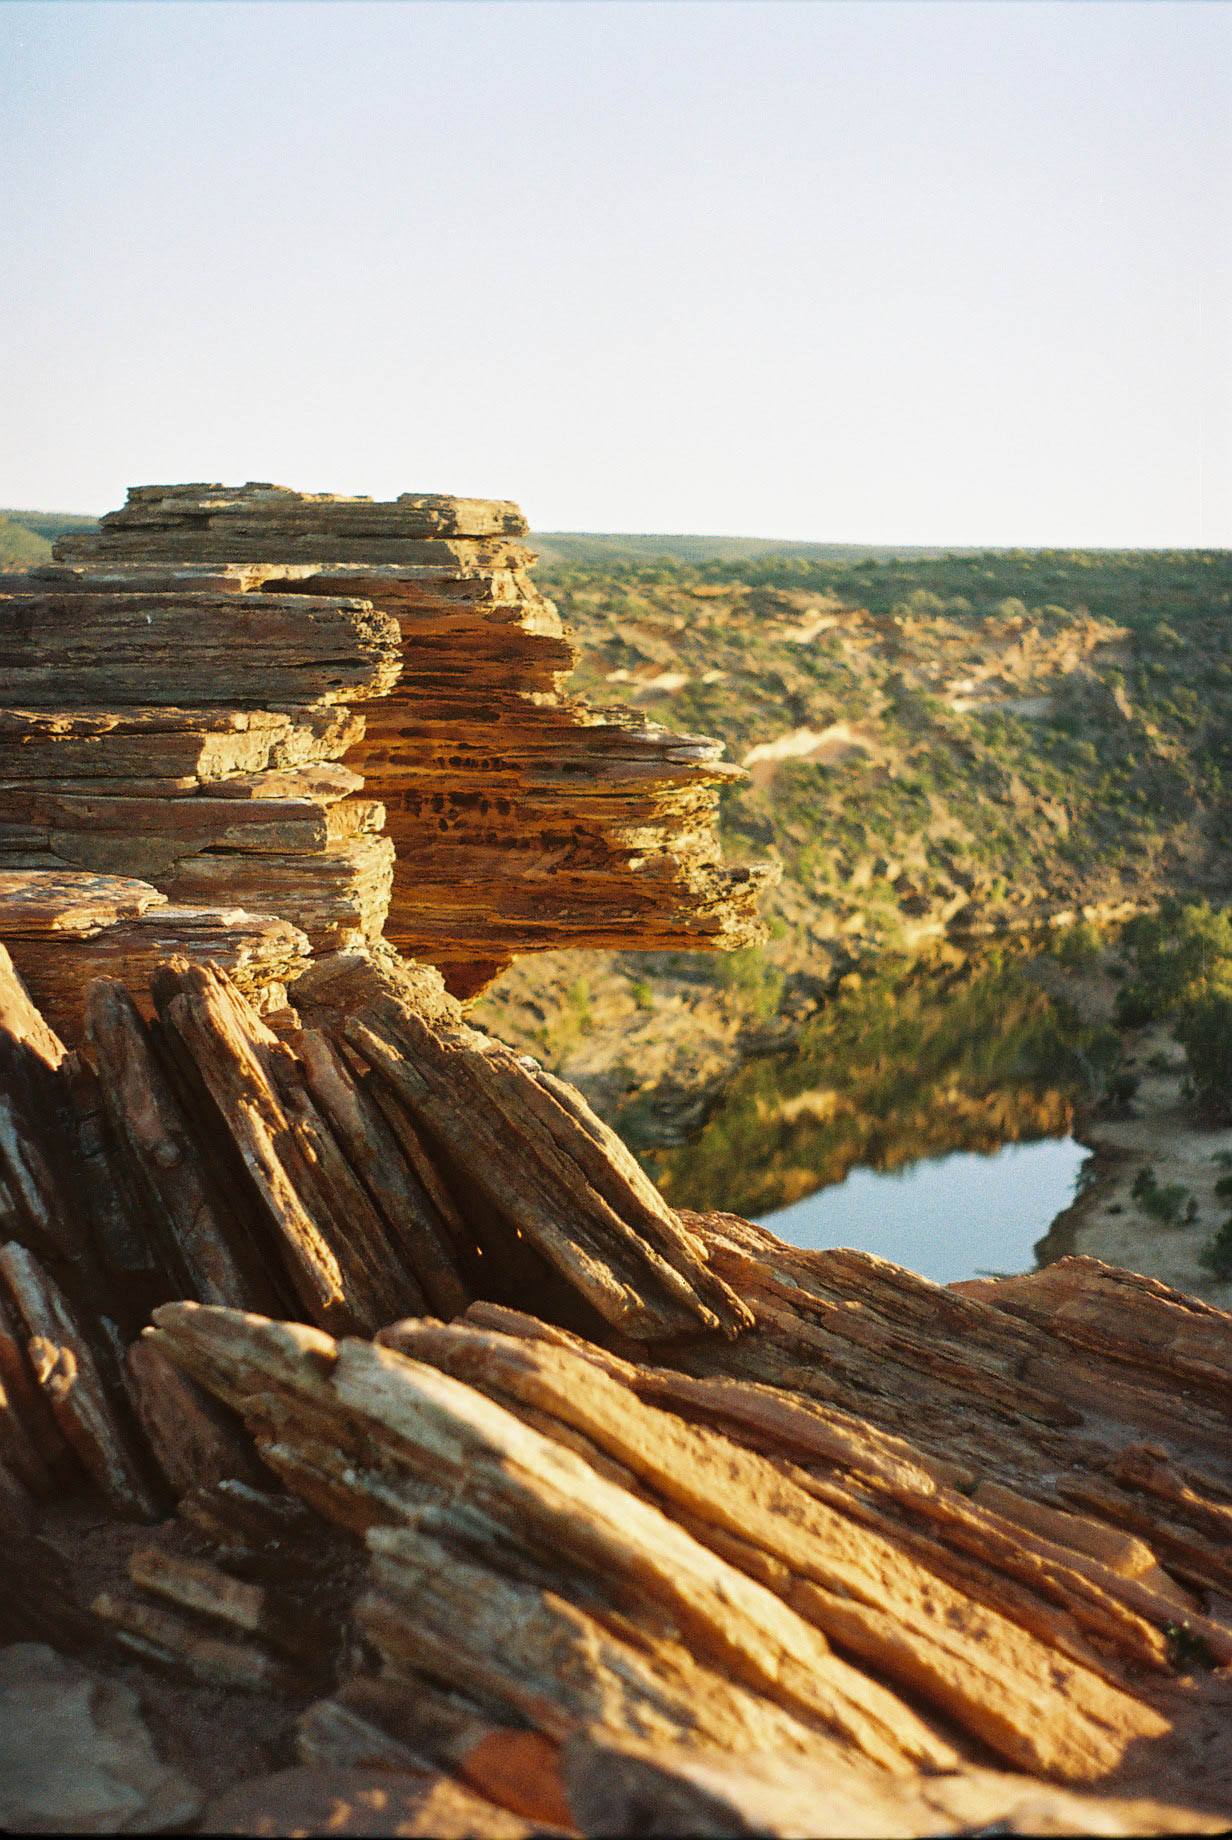 Kalbarri Roadtrip Nature's Window Rocks Analogue Travel Photographer